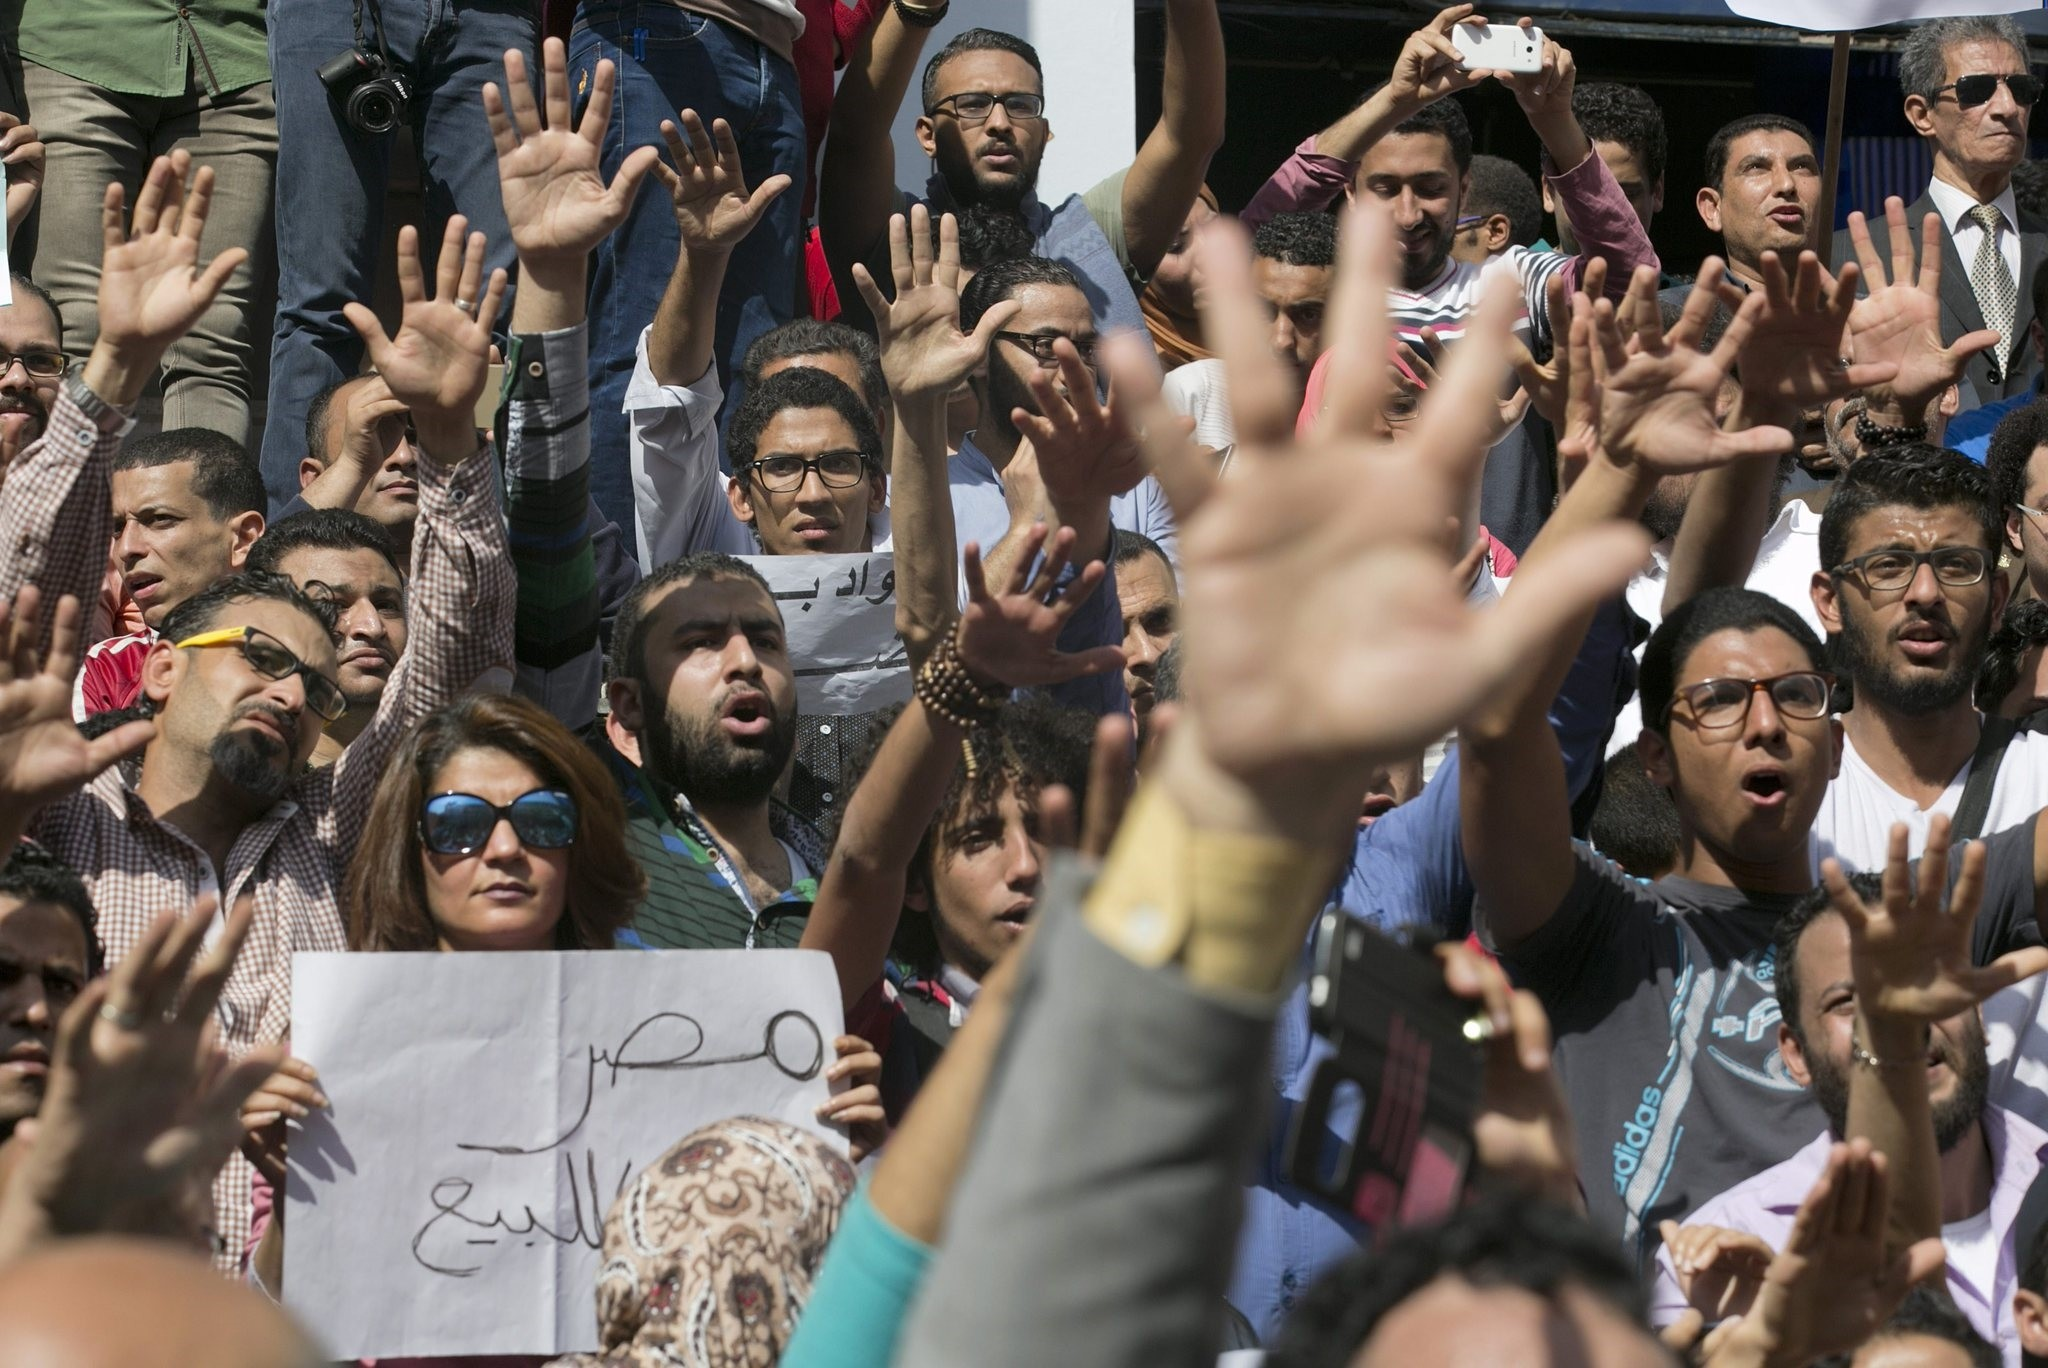 Egyptians shout slogans against Egyptian President Abdel-Fattah el-Sissi during a protest in Cairo. (AP Photo)